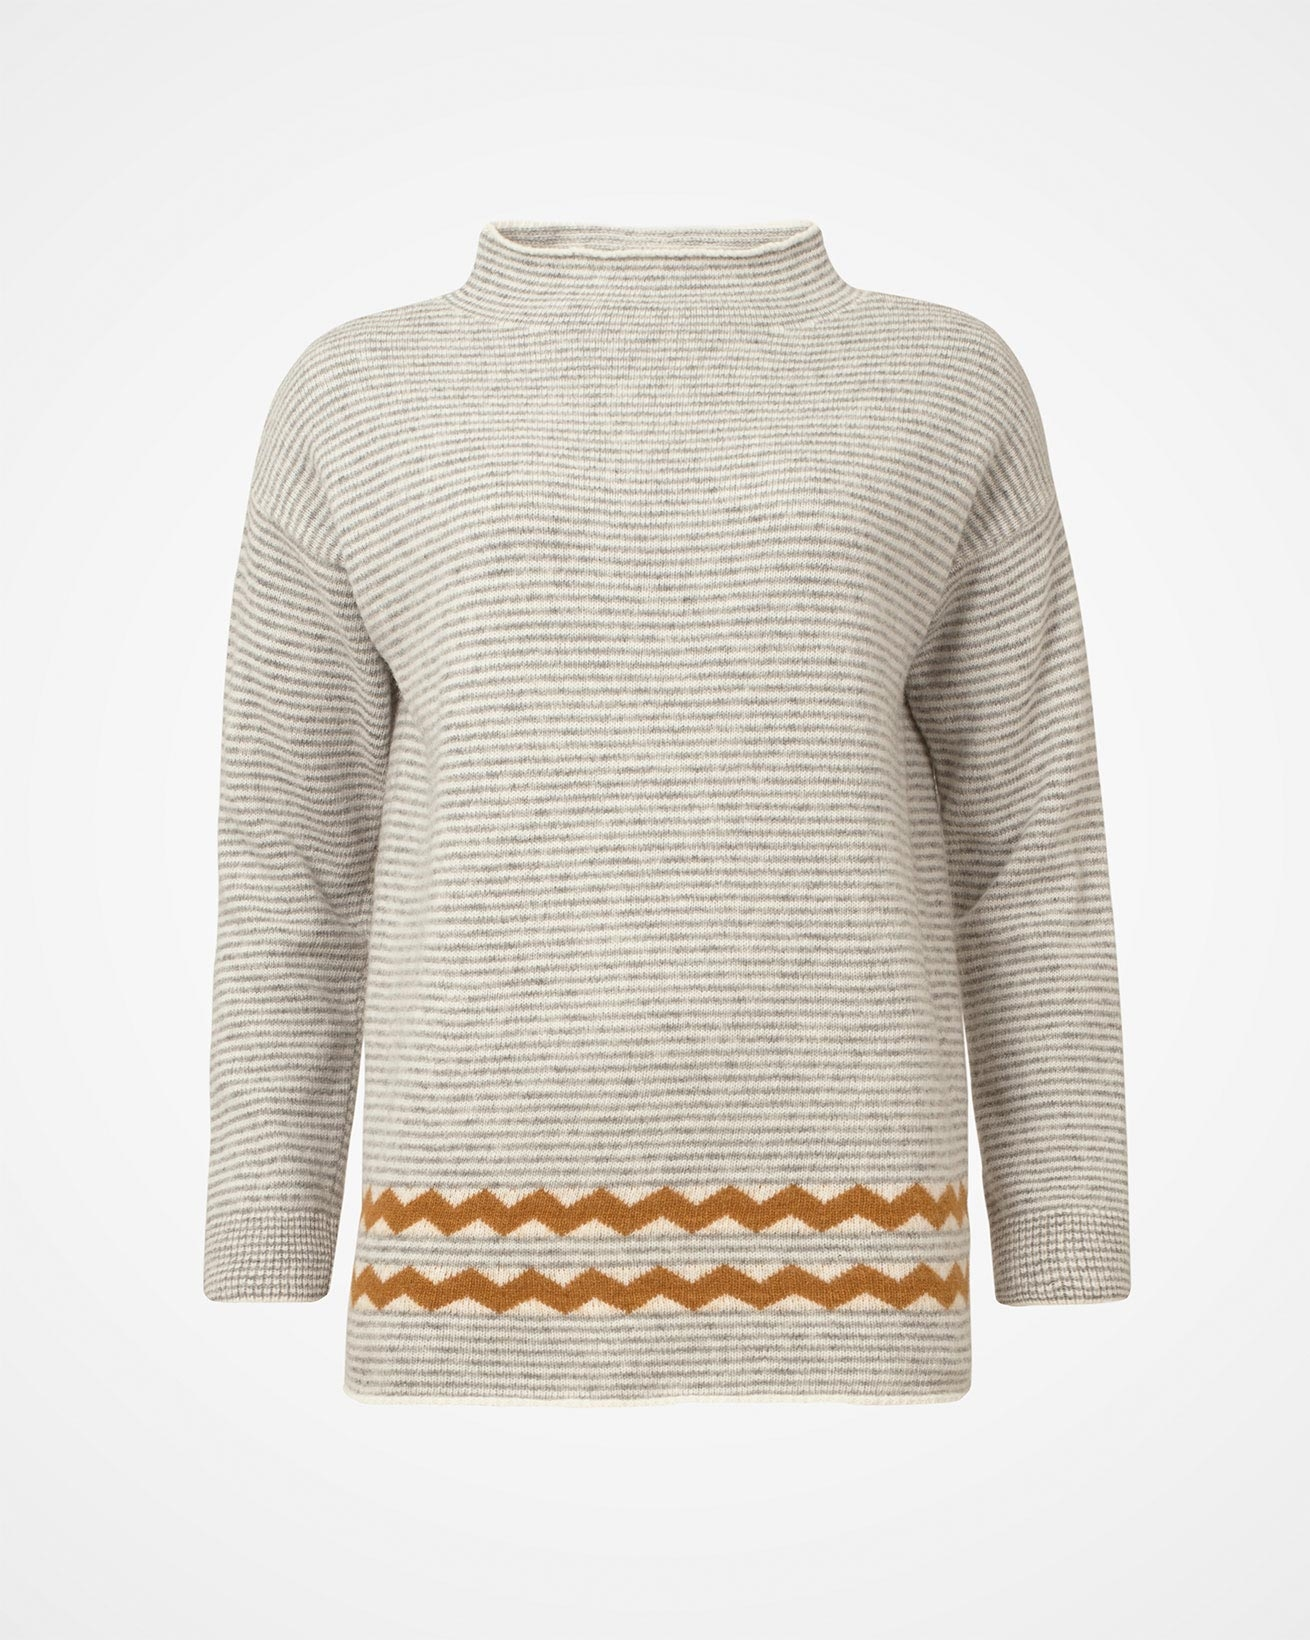 7400_felted-funnel-neck_pearl-grey-microstripe_front.jpg